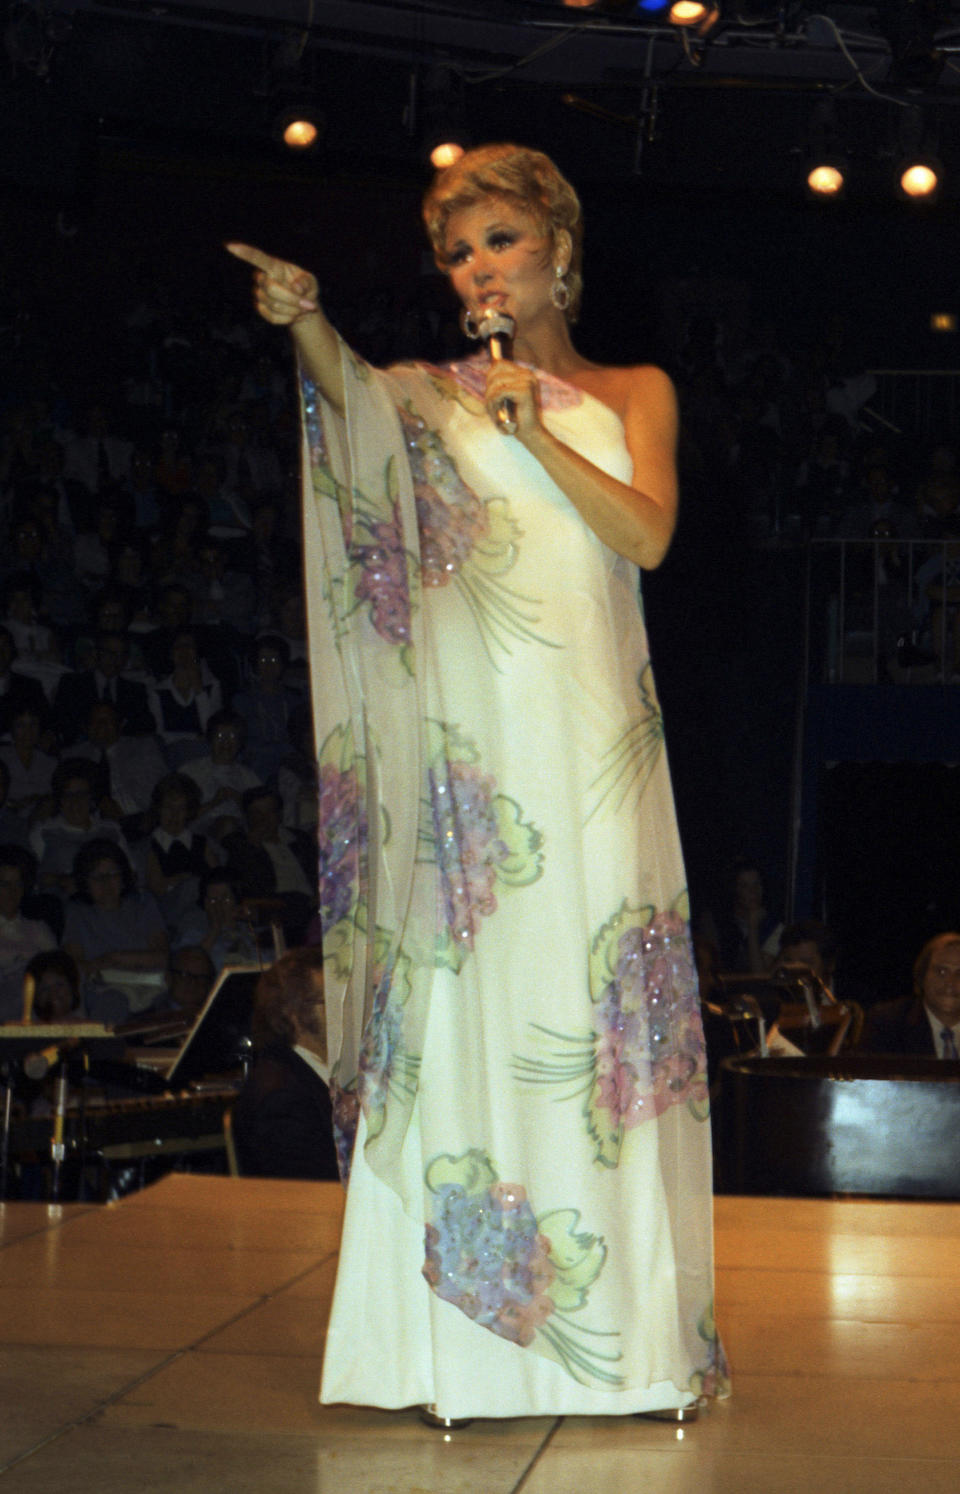 A Mitzi Gaynor stage-worn gown designed by Bob Mackie